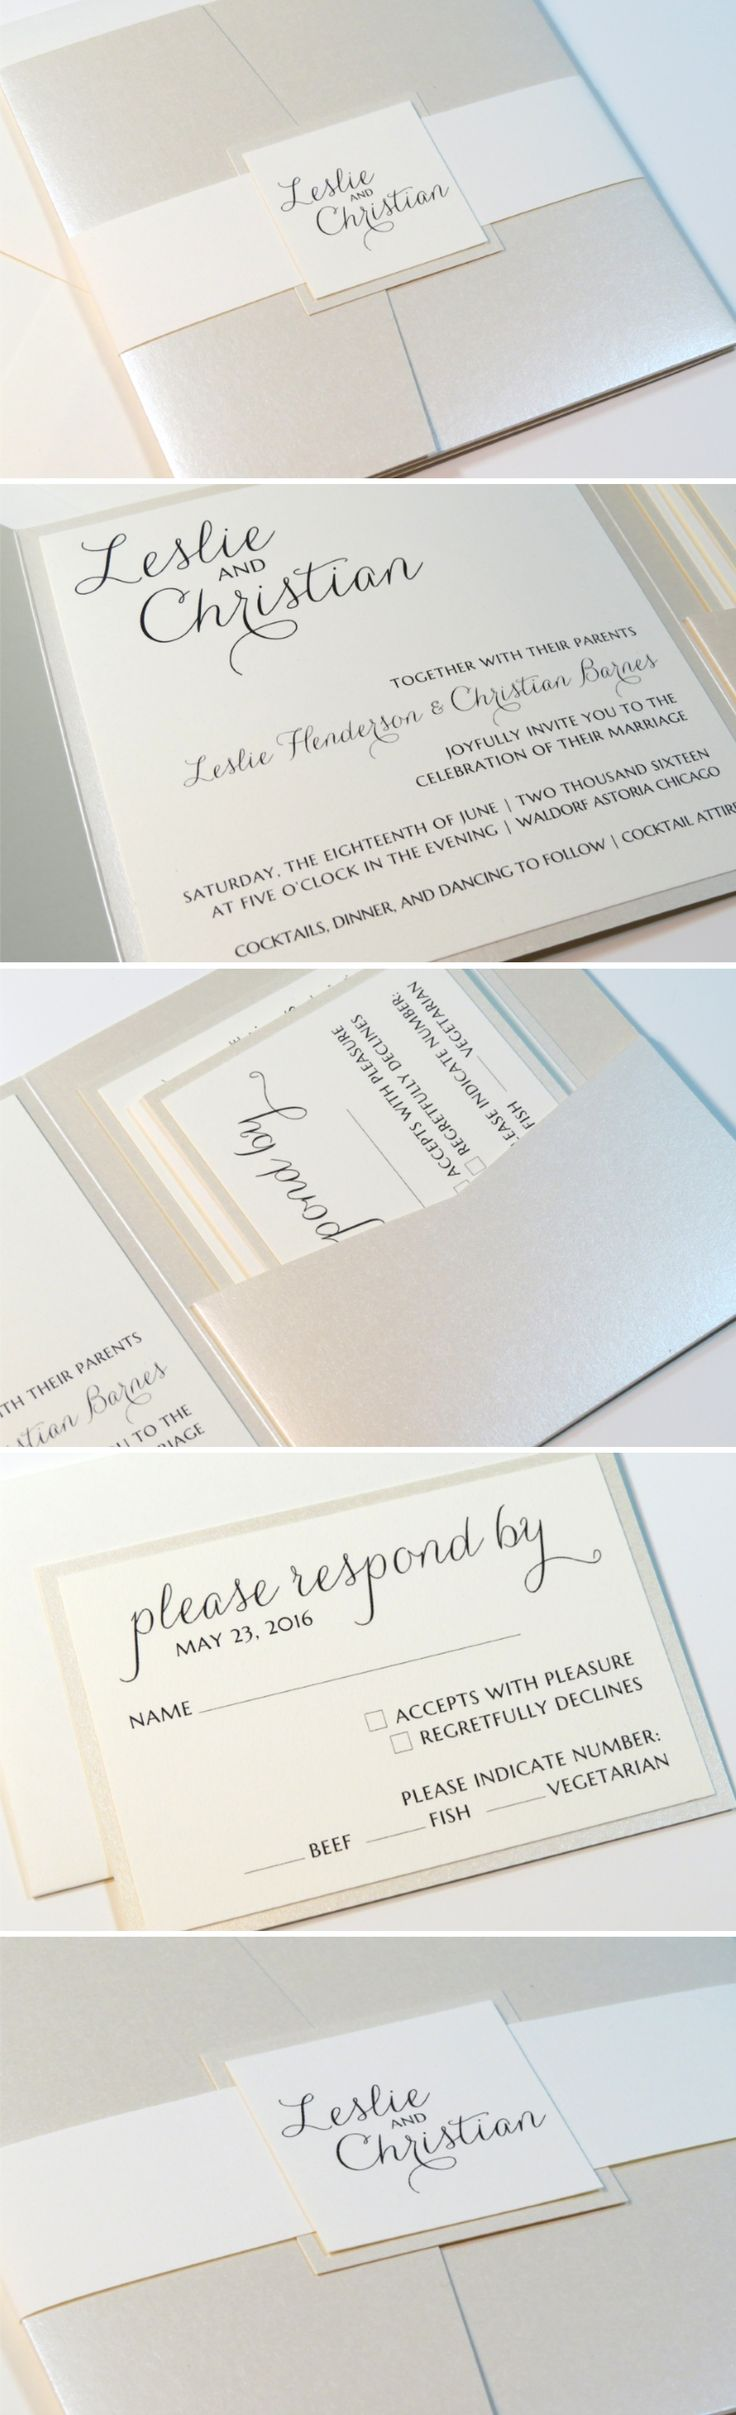 wedding invitations east london south africa%0A Romantic Cream  Opal  Champagne  Ivory Wedding Invitation Suite  Elegant   Formal